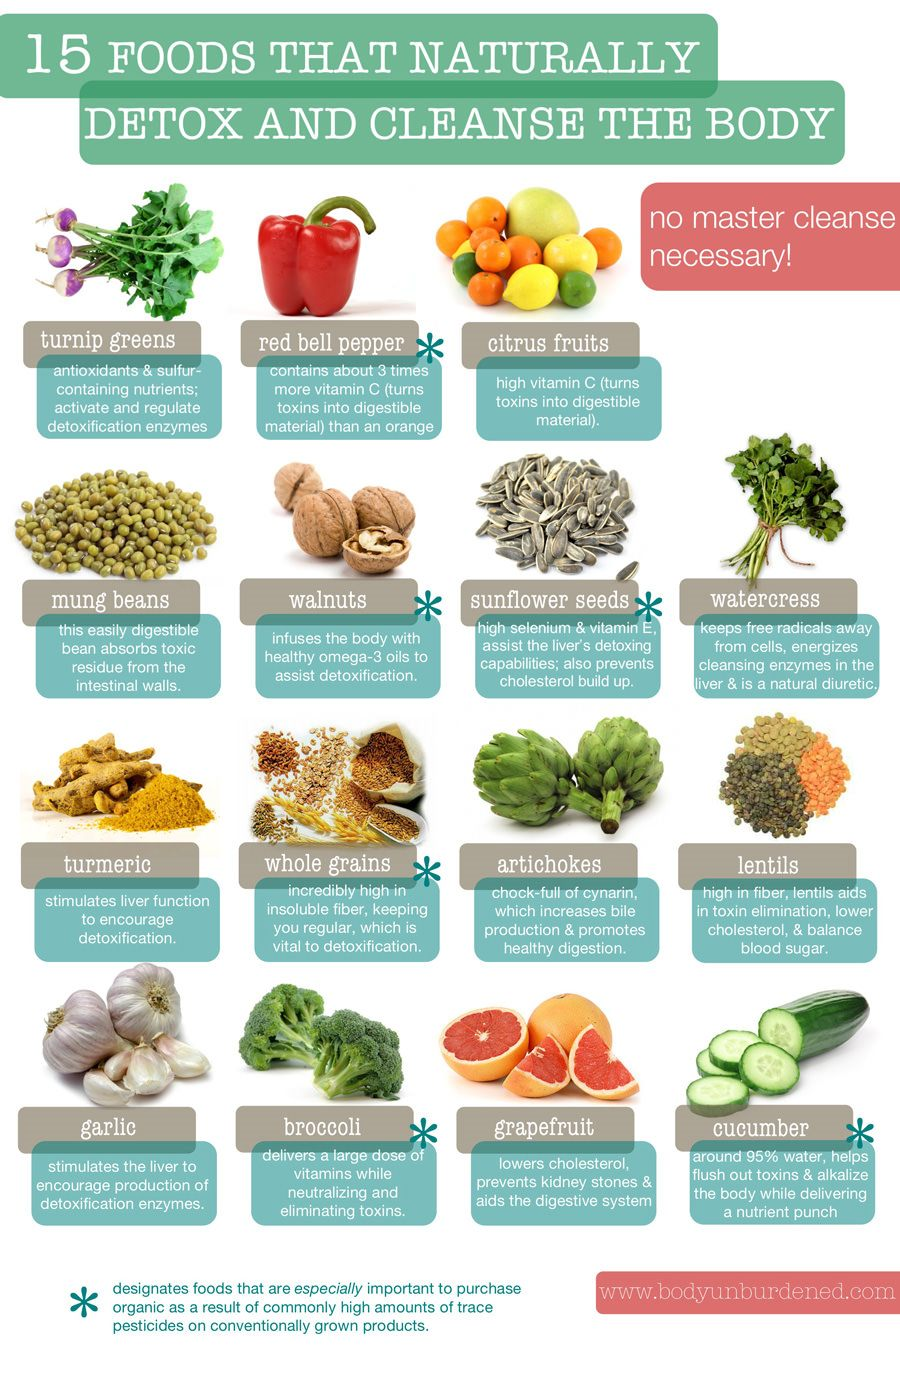 15 Foods That Detox The Body Infographic